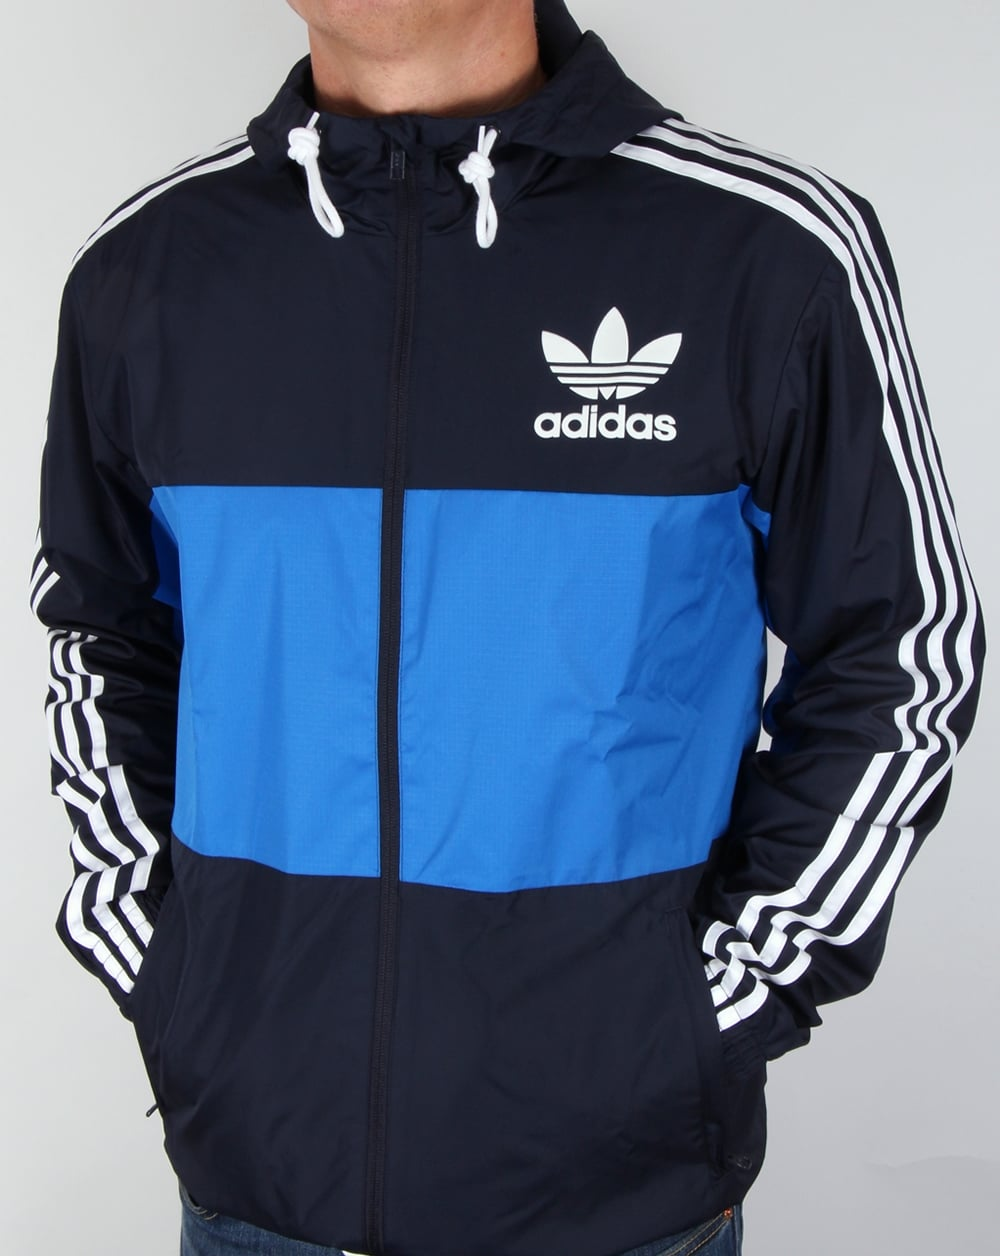 Adidas Originals California Windbreaker Navy/Bluebird,jacket,coat,mens